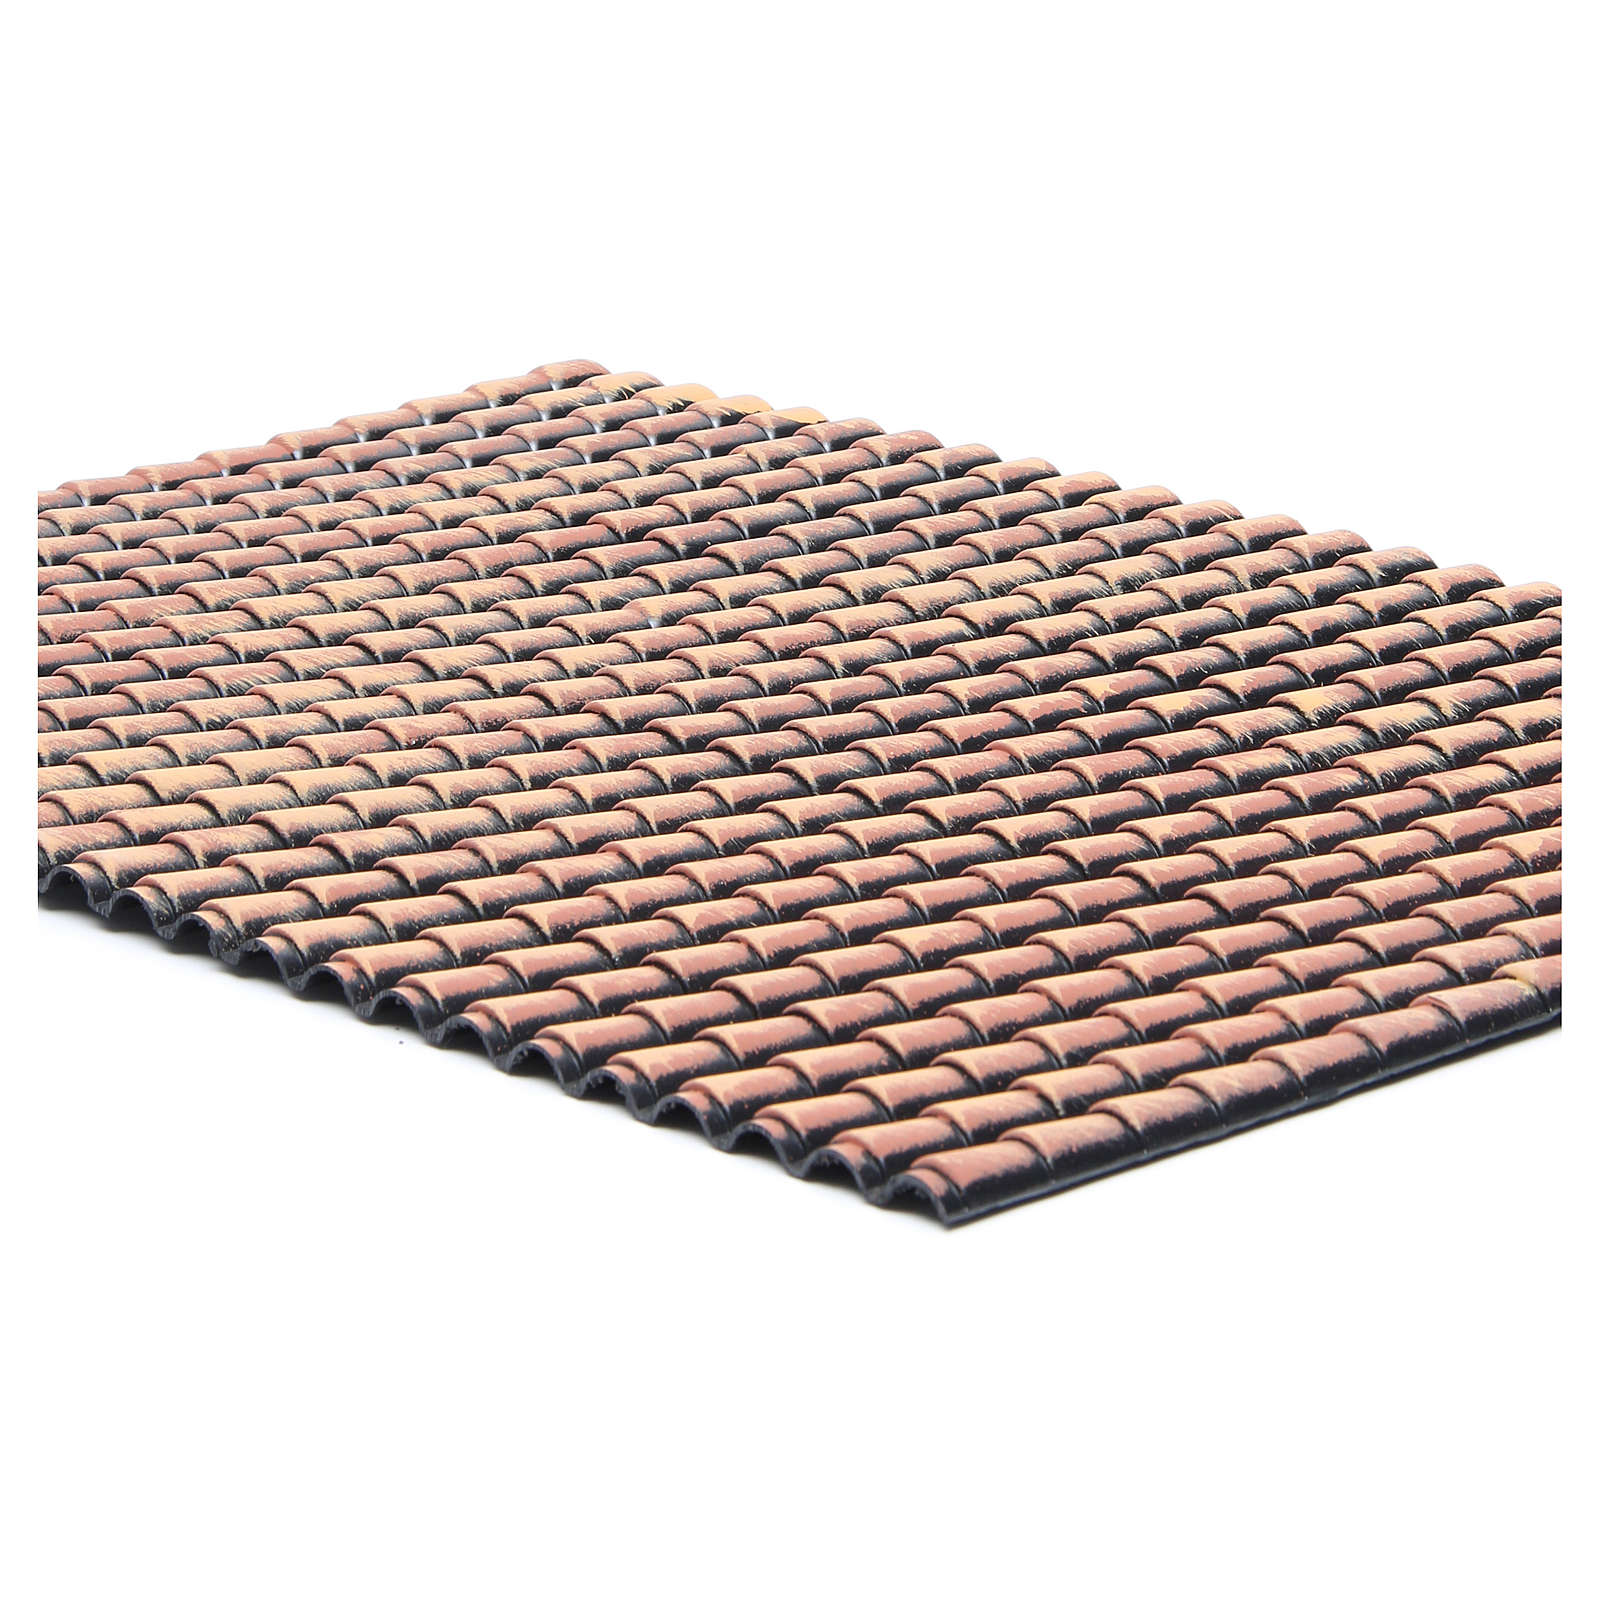 Roof panel with red shingles 50x35cm nativity accessories 4